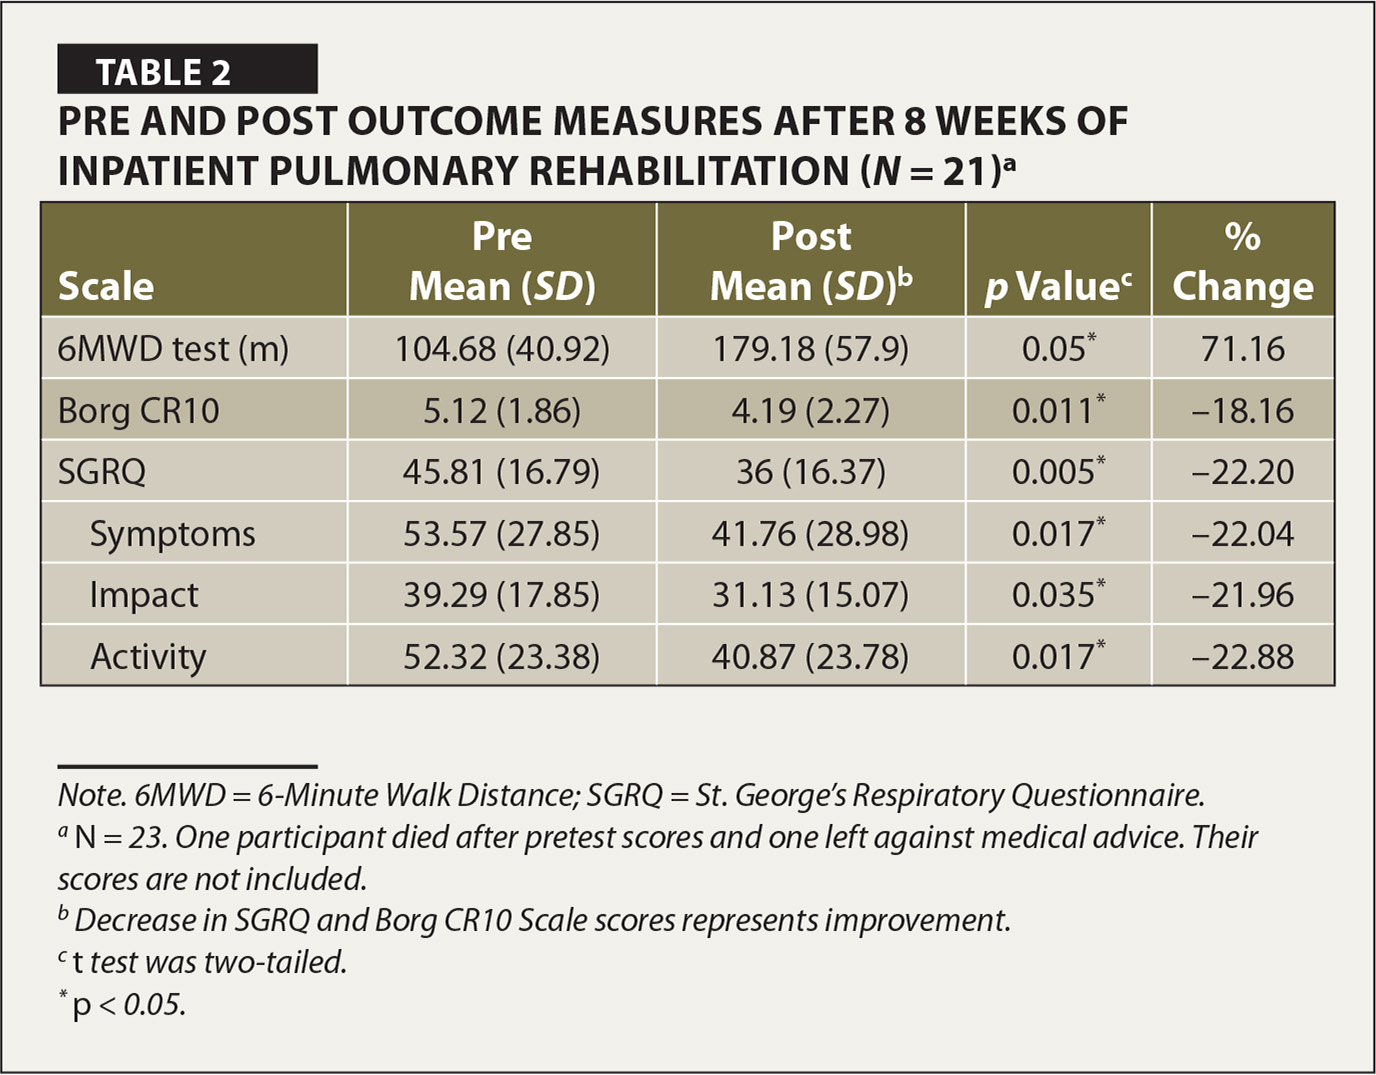 Pre and Post Outcome Measures after 8 Weeks of Inpatient Pulmonary Rehabilitation (N = 21)a